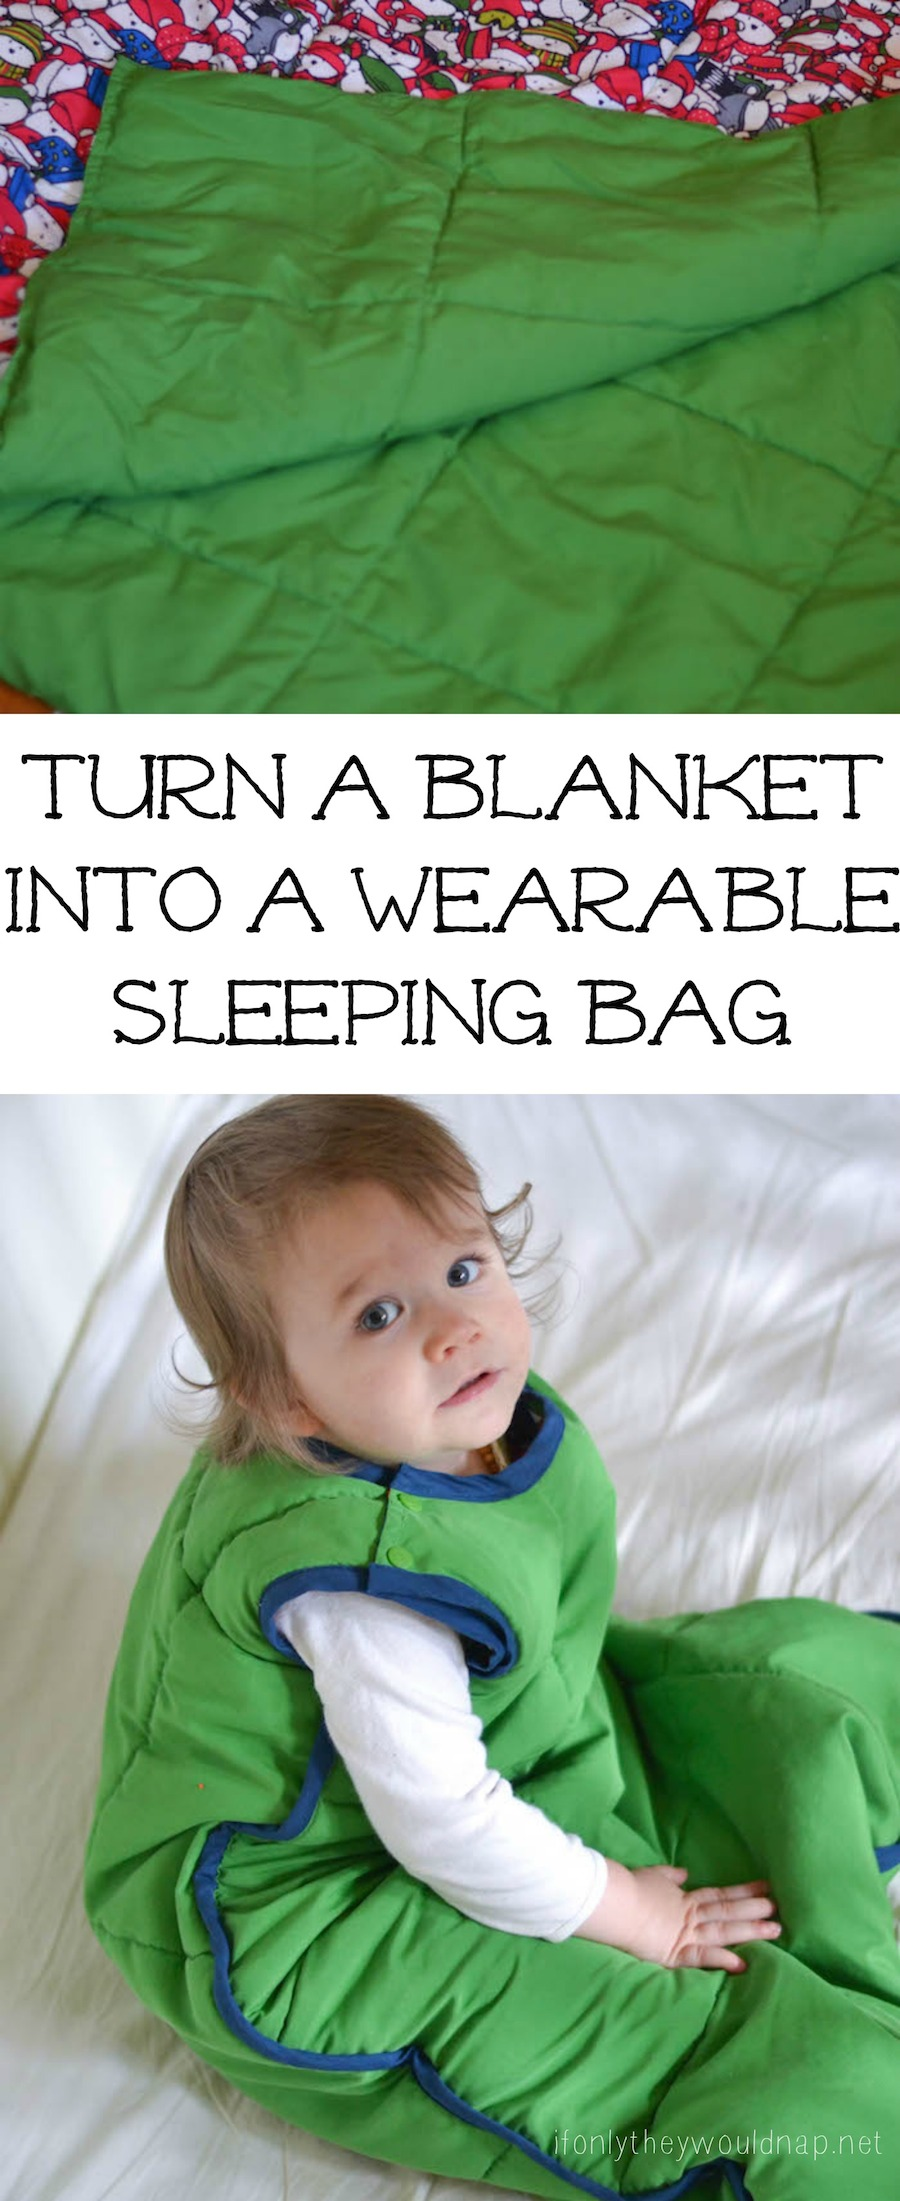 Diy Turn A Blanket Into A Wearable Sleeping Bag For Baby